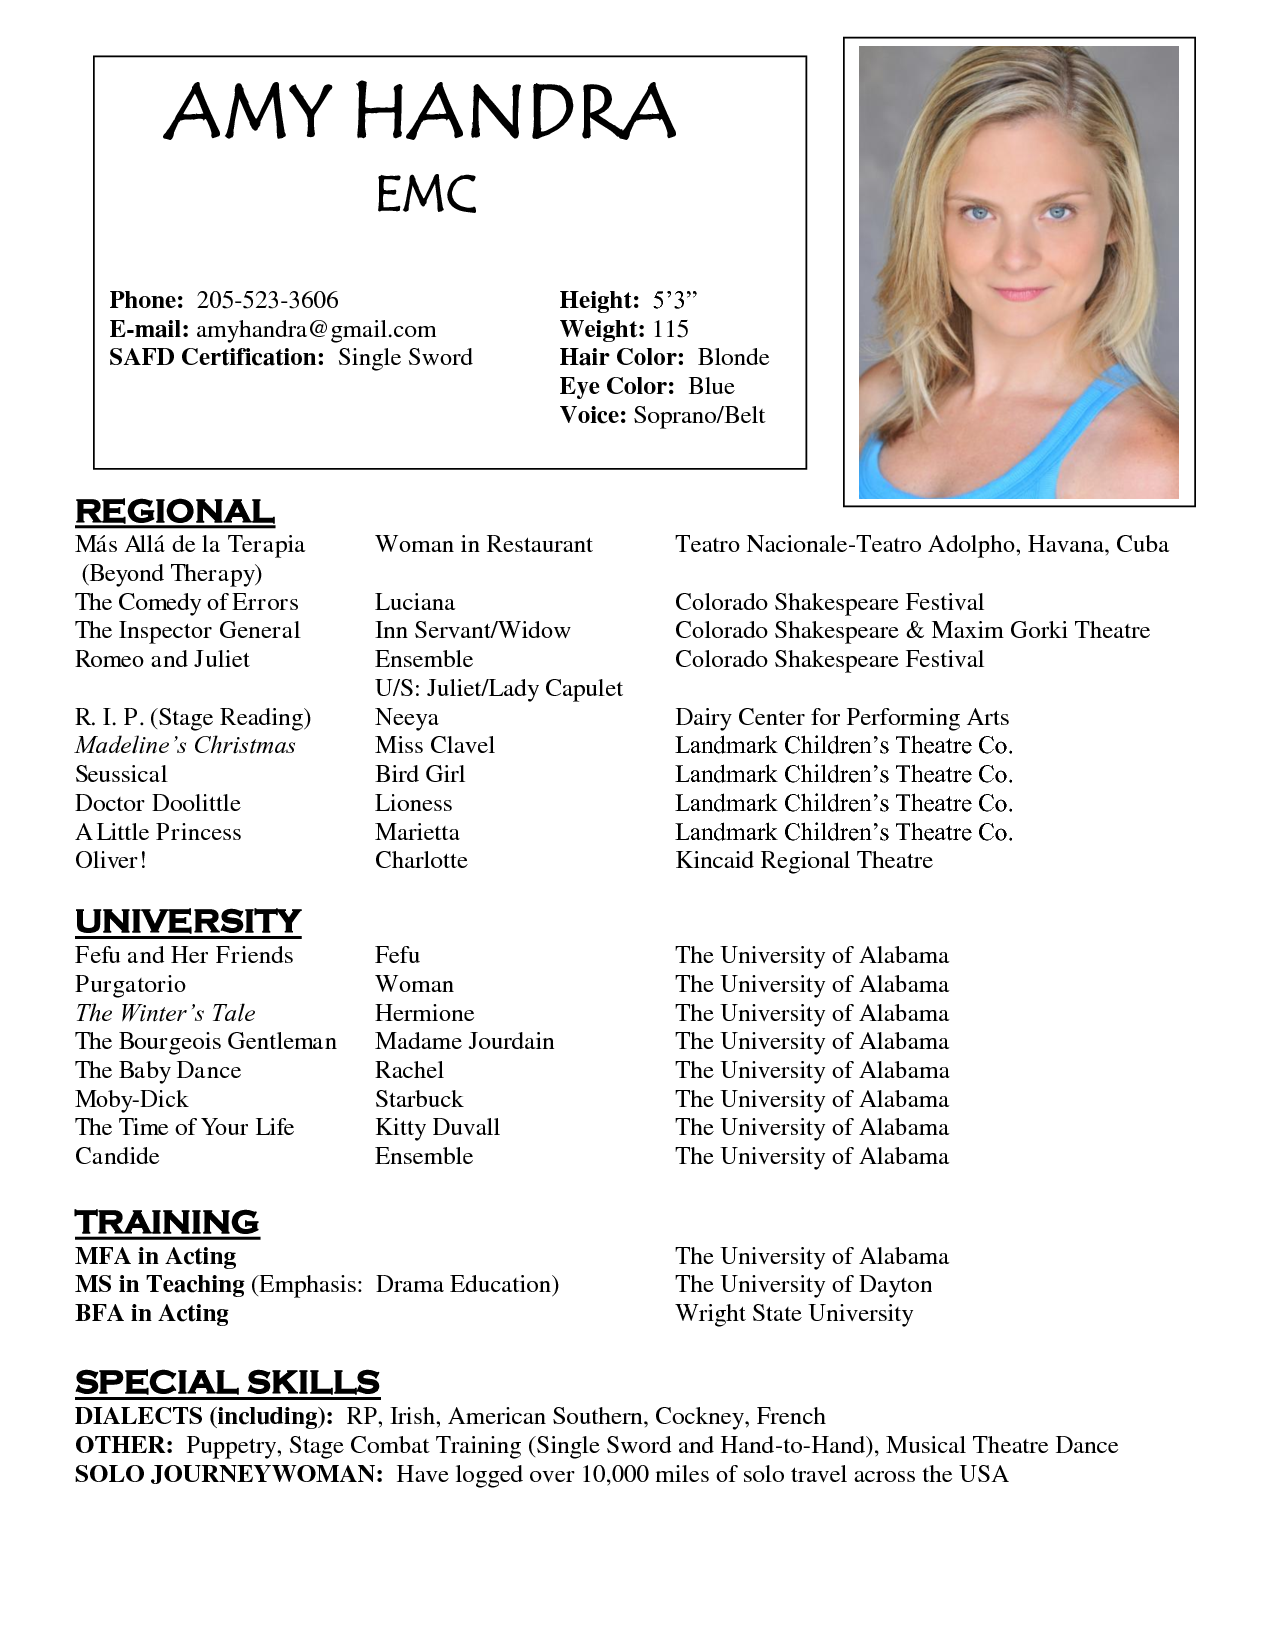 acting resume template for mac by amy handra - Acting Resume Template